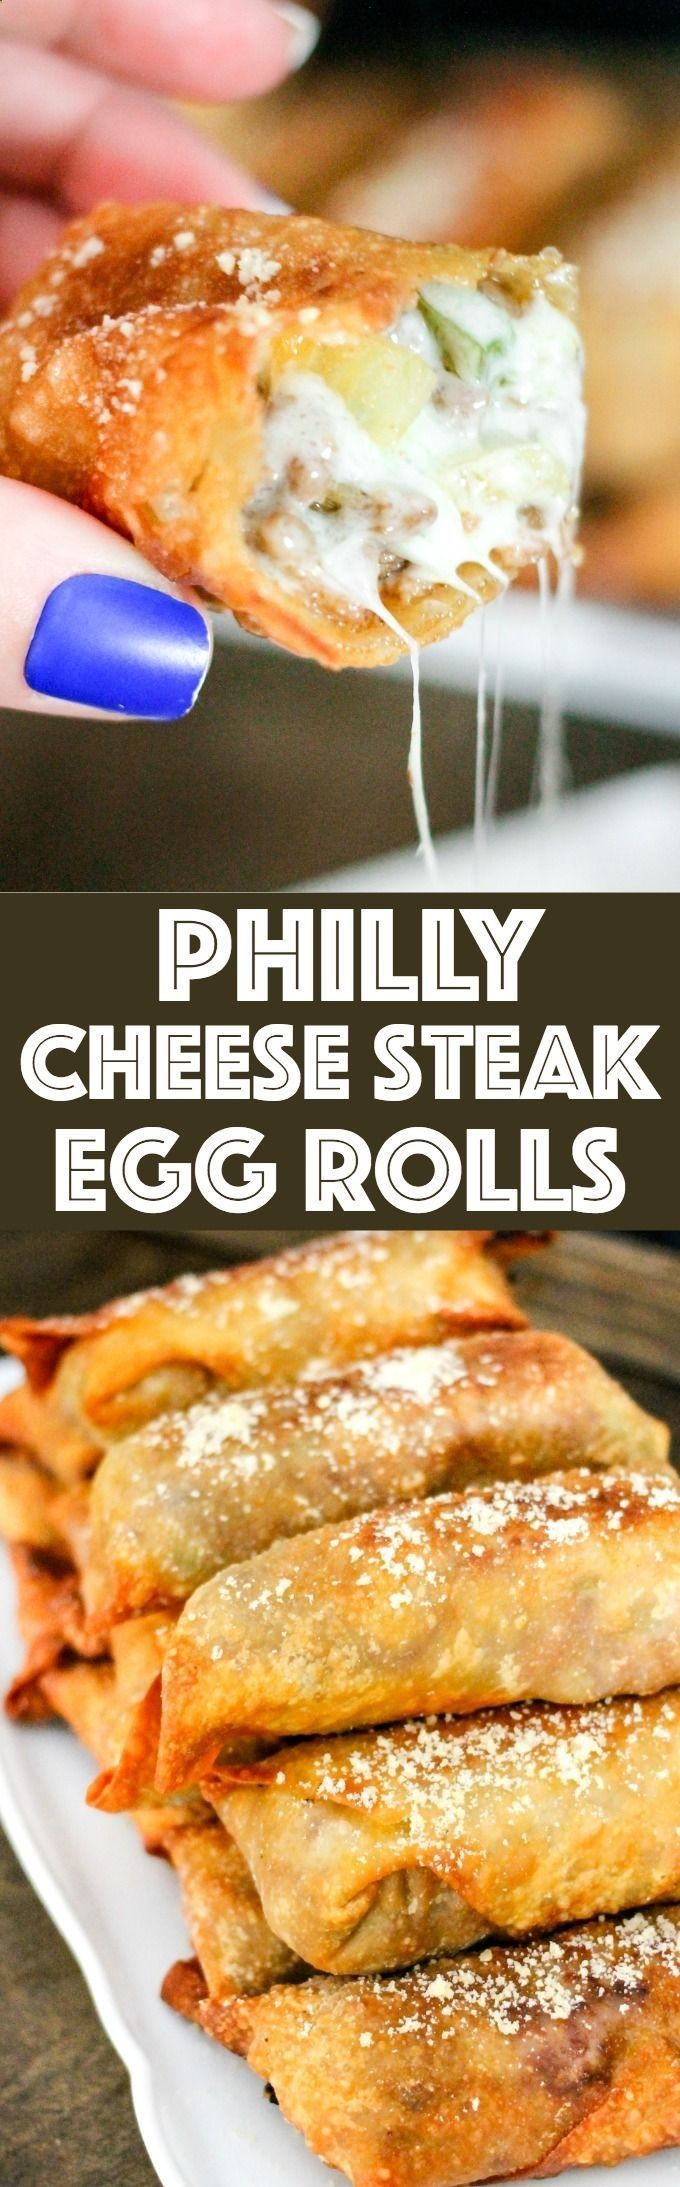 57 Best Recipes Images On Pinterest Cooking Rezepte And Fronte Smoked Beef 400 Gram Philly Cheese Steak Egg Rolls Are A Fun Spin Americas Favorite Sandwich